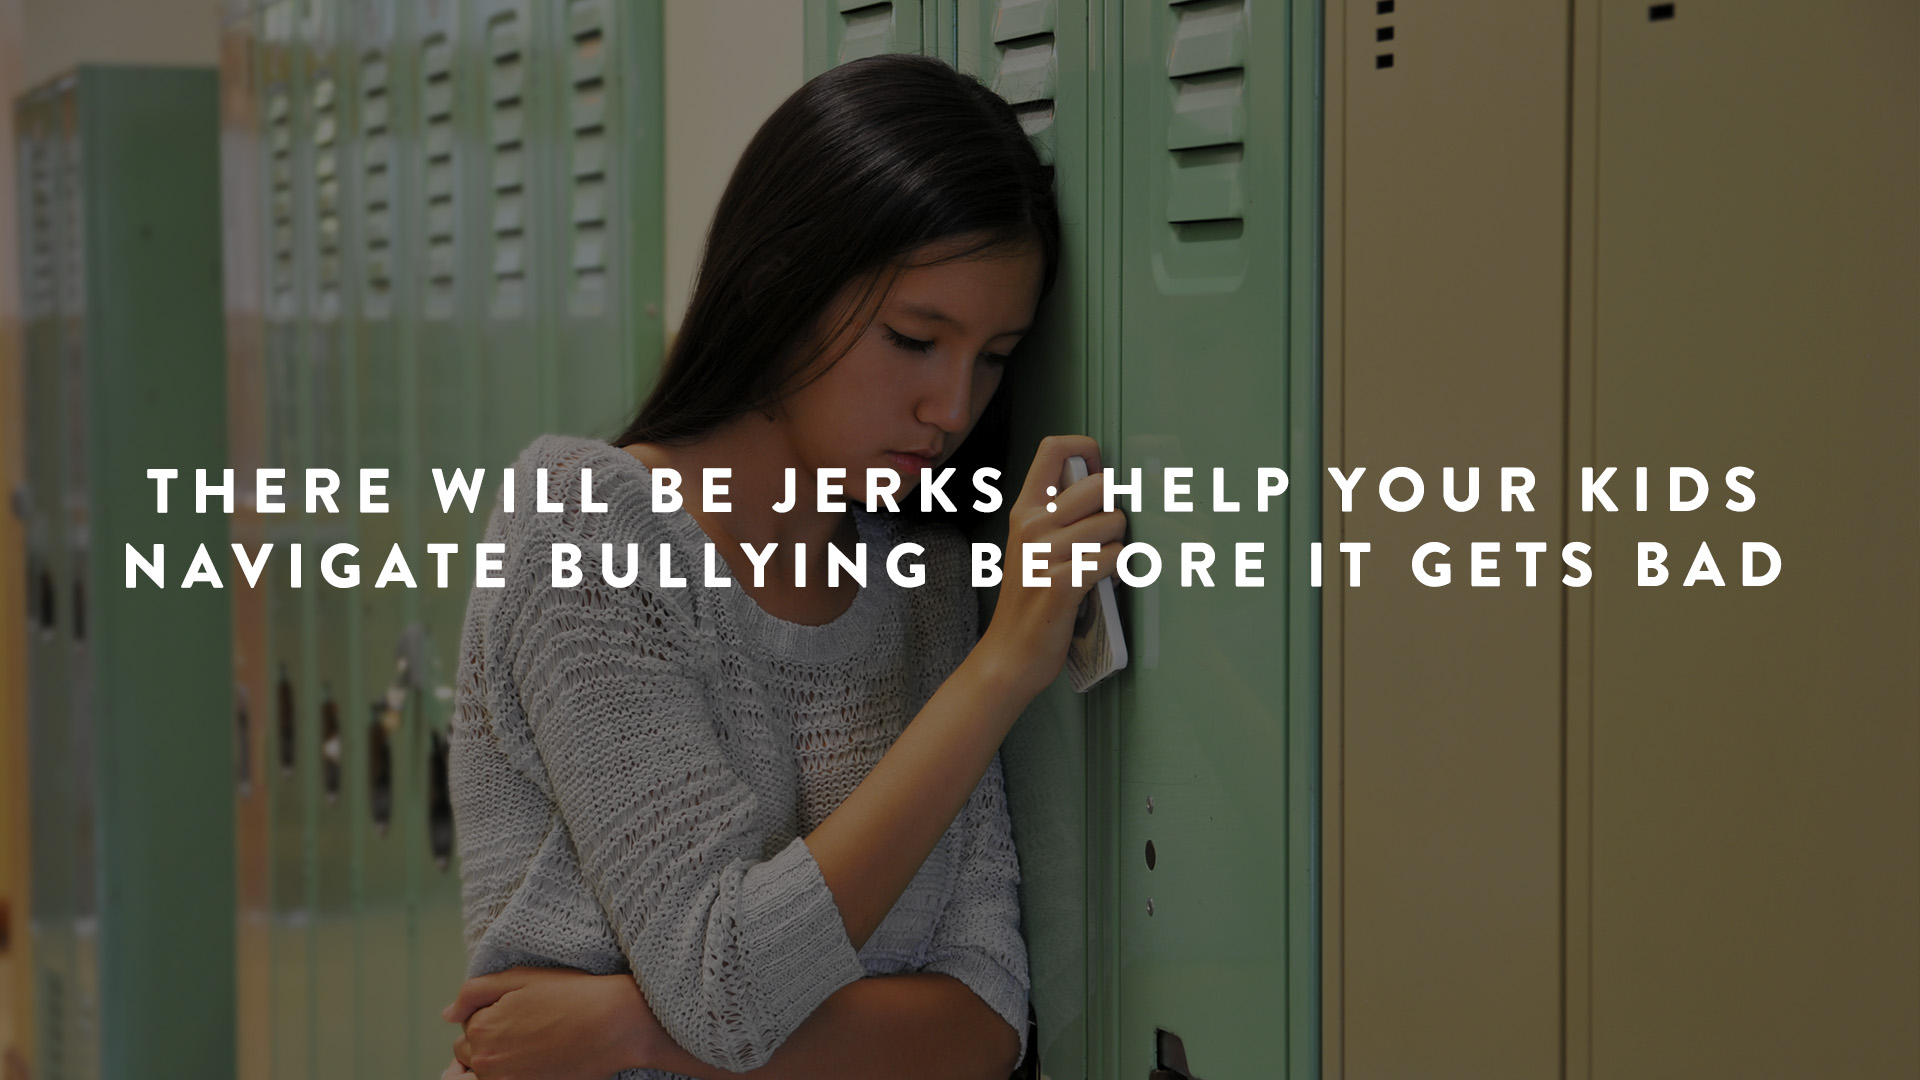 There Will Be jerks - how to help kids navigate bullying before it gets bad